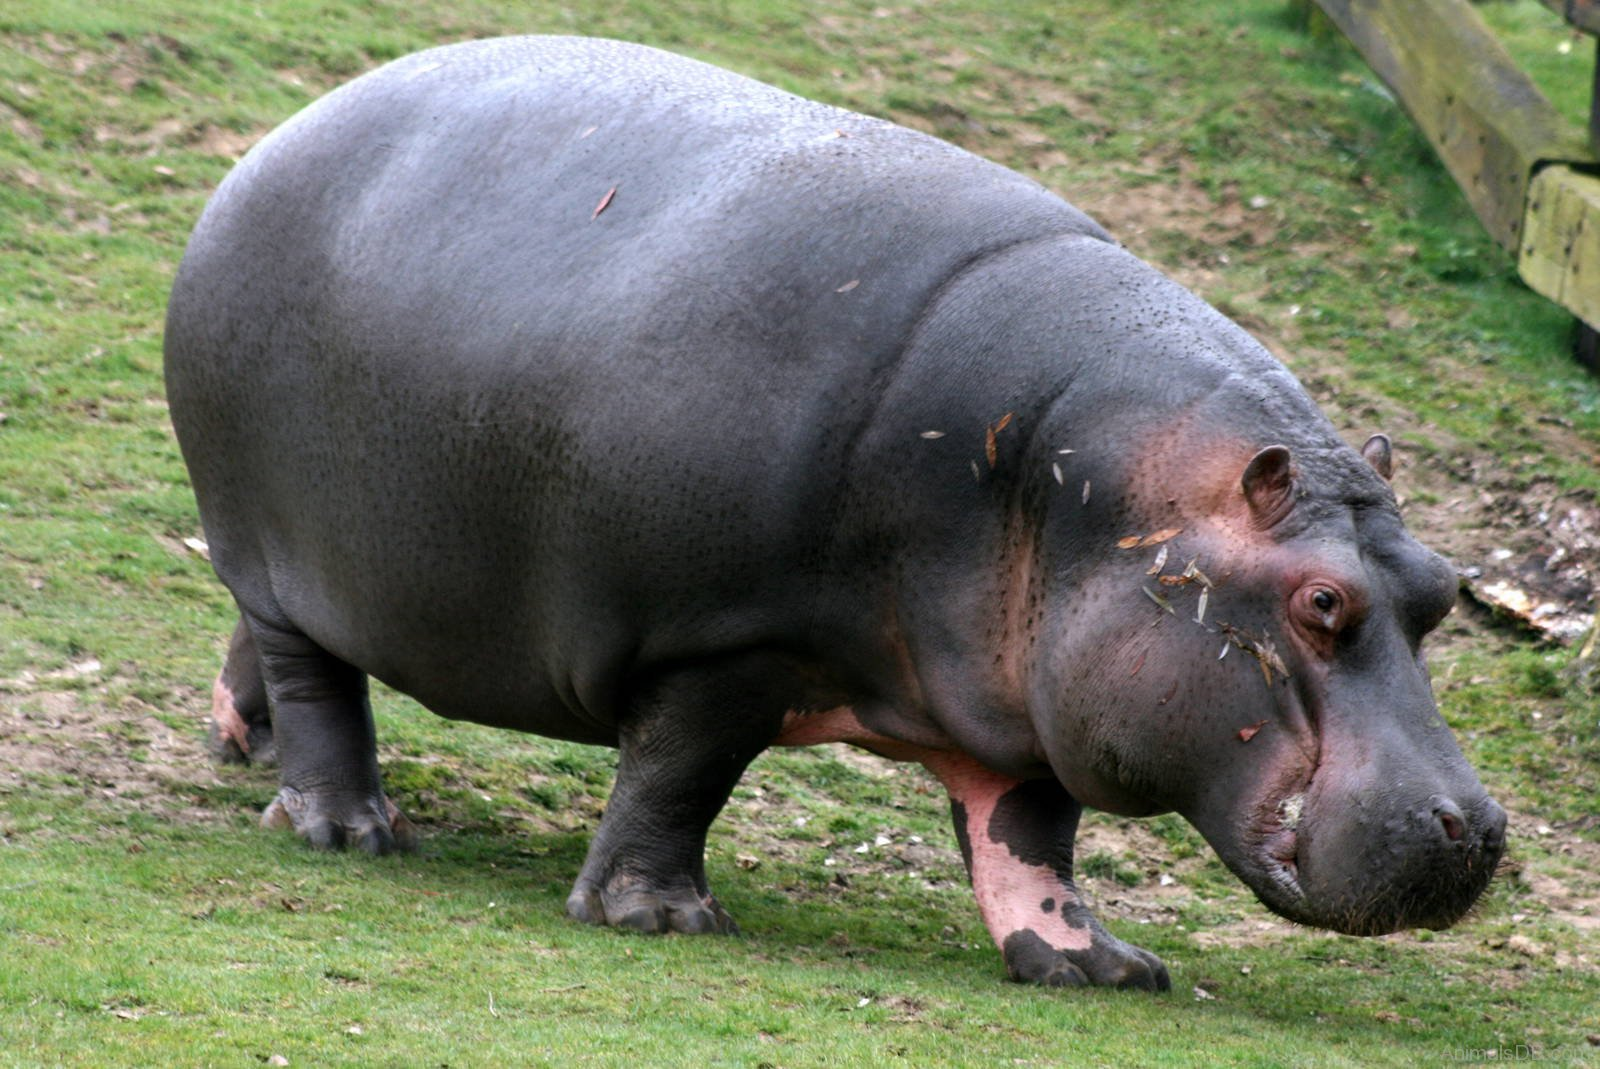 Hippopotamus widescreen wallpapers